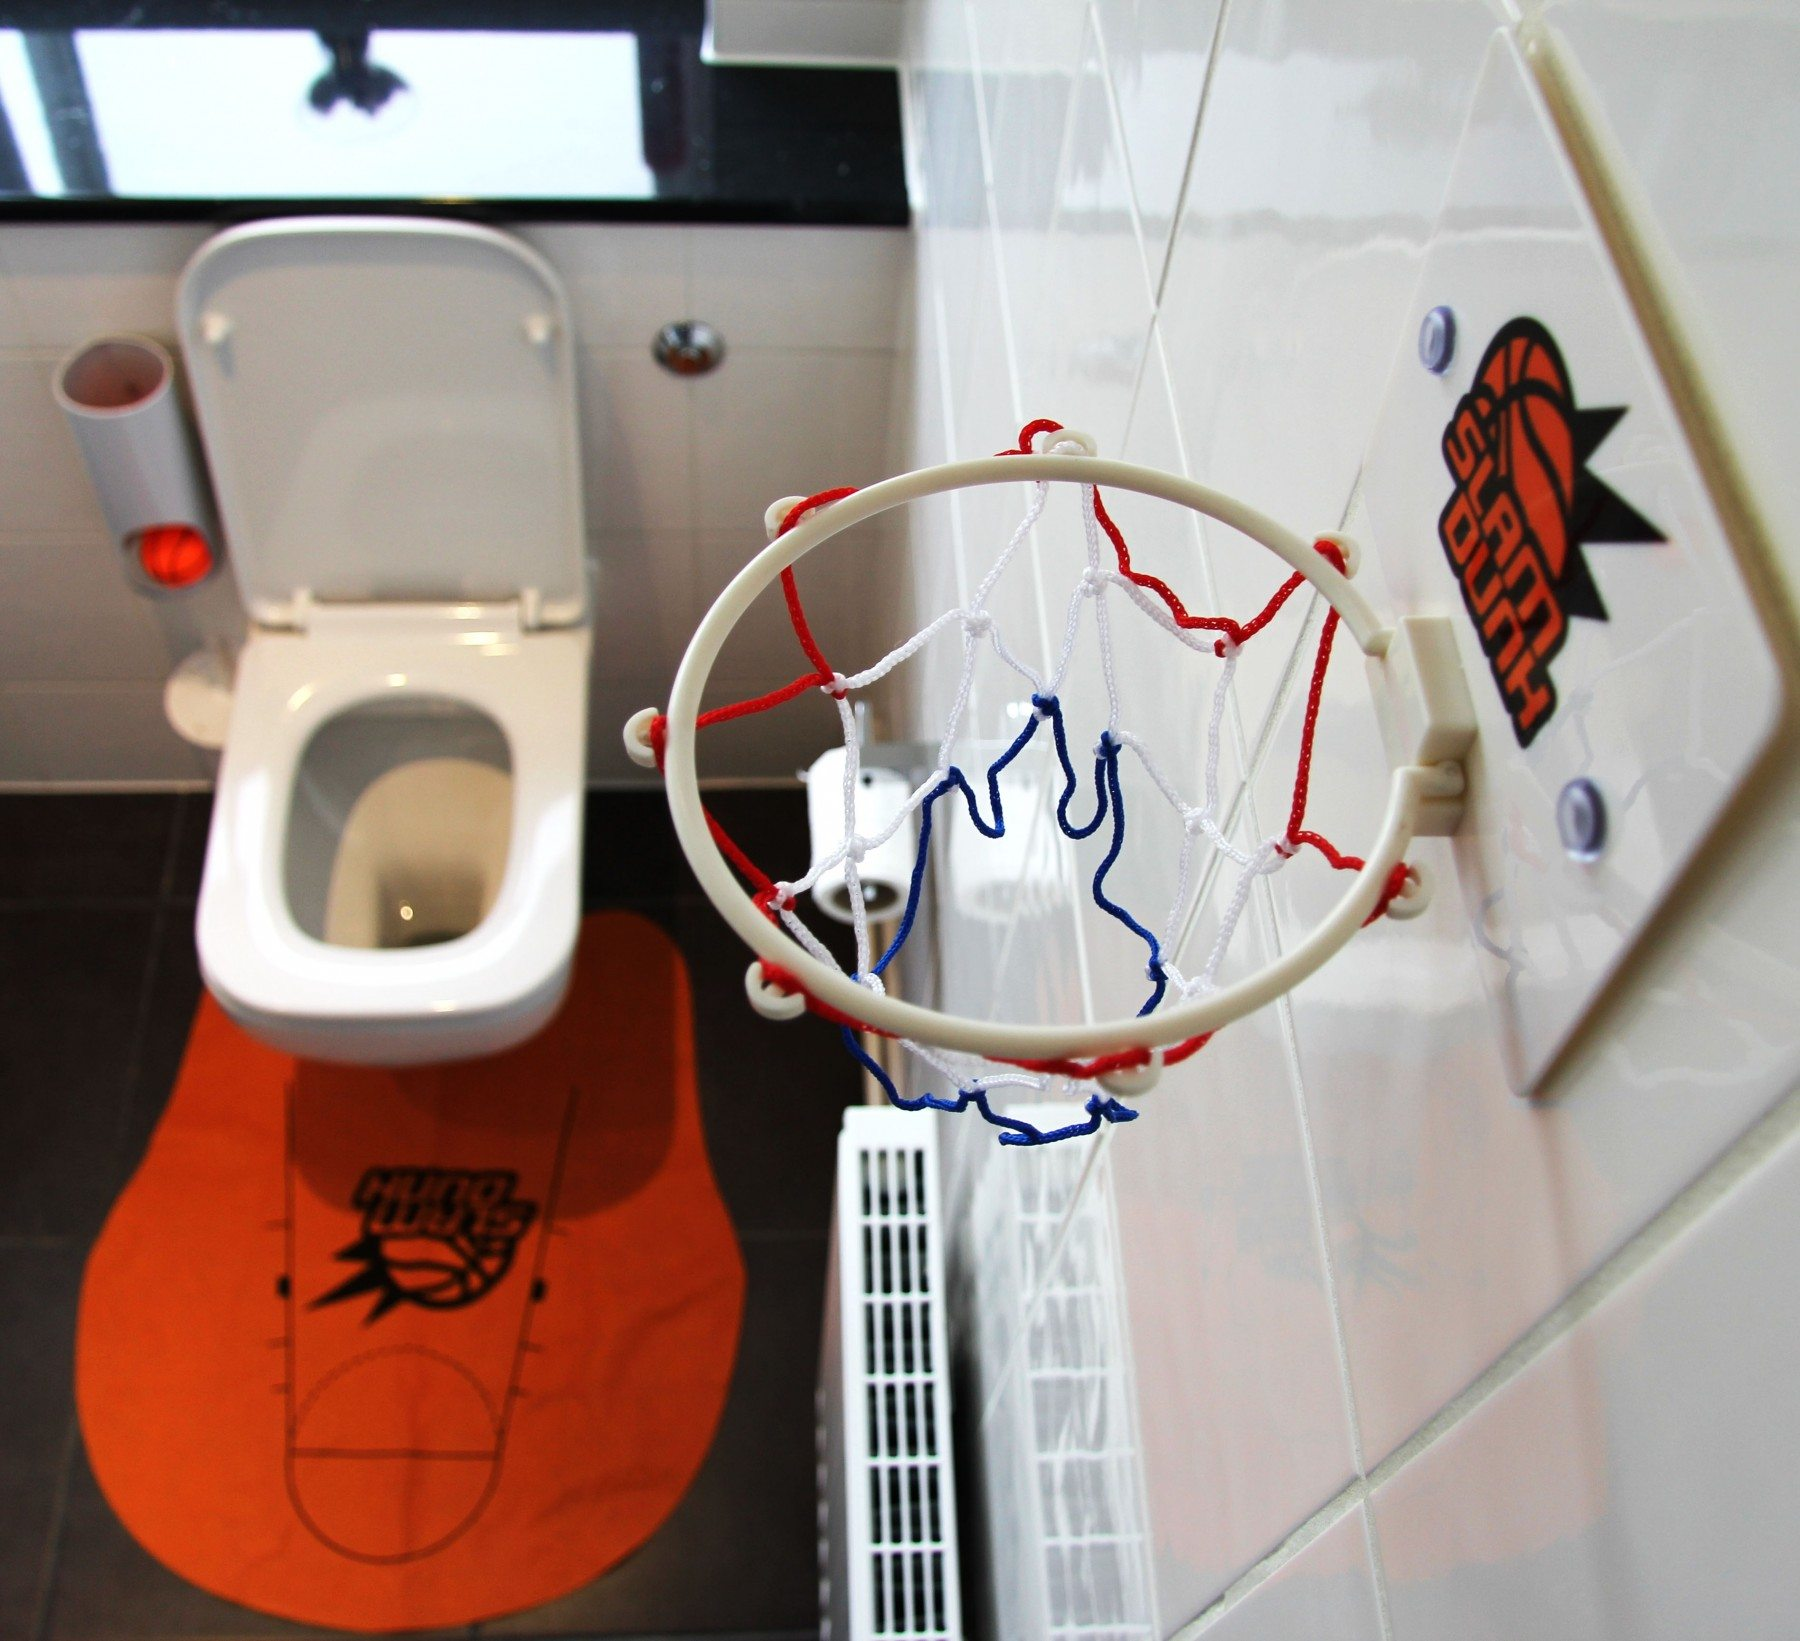 Toilet basketbalset